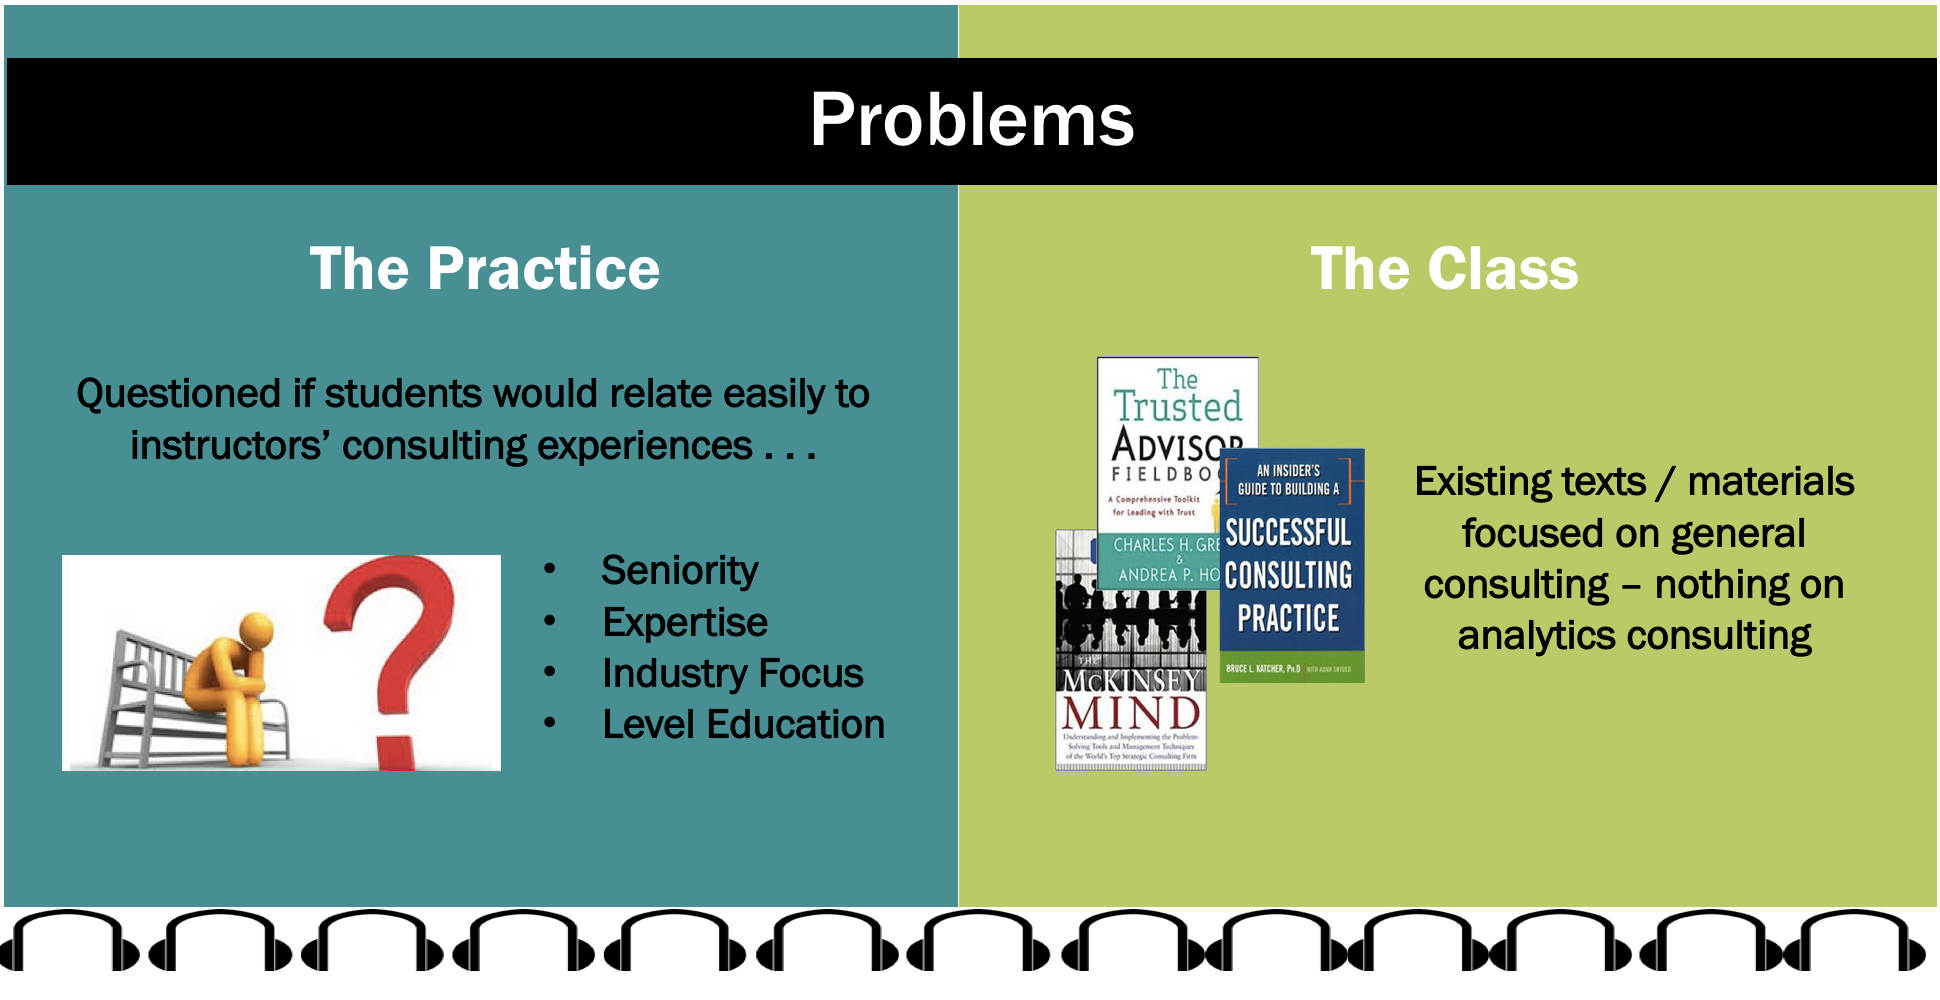 Problems: The Practice: Course designers/instructors questioned if students would easily relate to instructor's consulting experiences as instructor seniority, expertise, industry focus and level of education differs from that of students. The Classroom: existing texts/materials focused on general consulting - no material specifically focused on analytics consulting